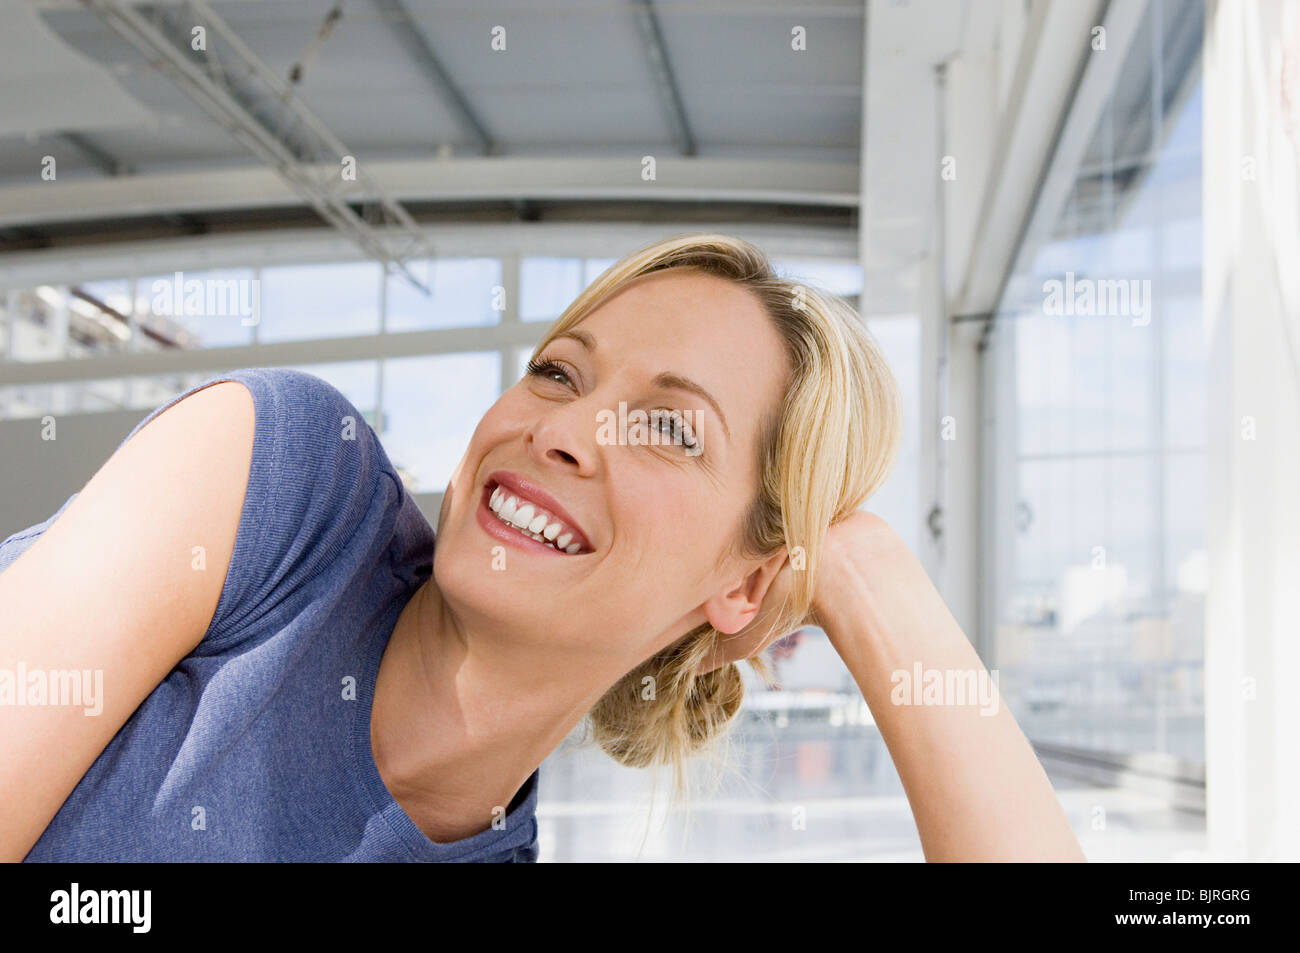 Smiling woman - Stock Image